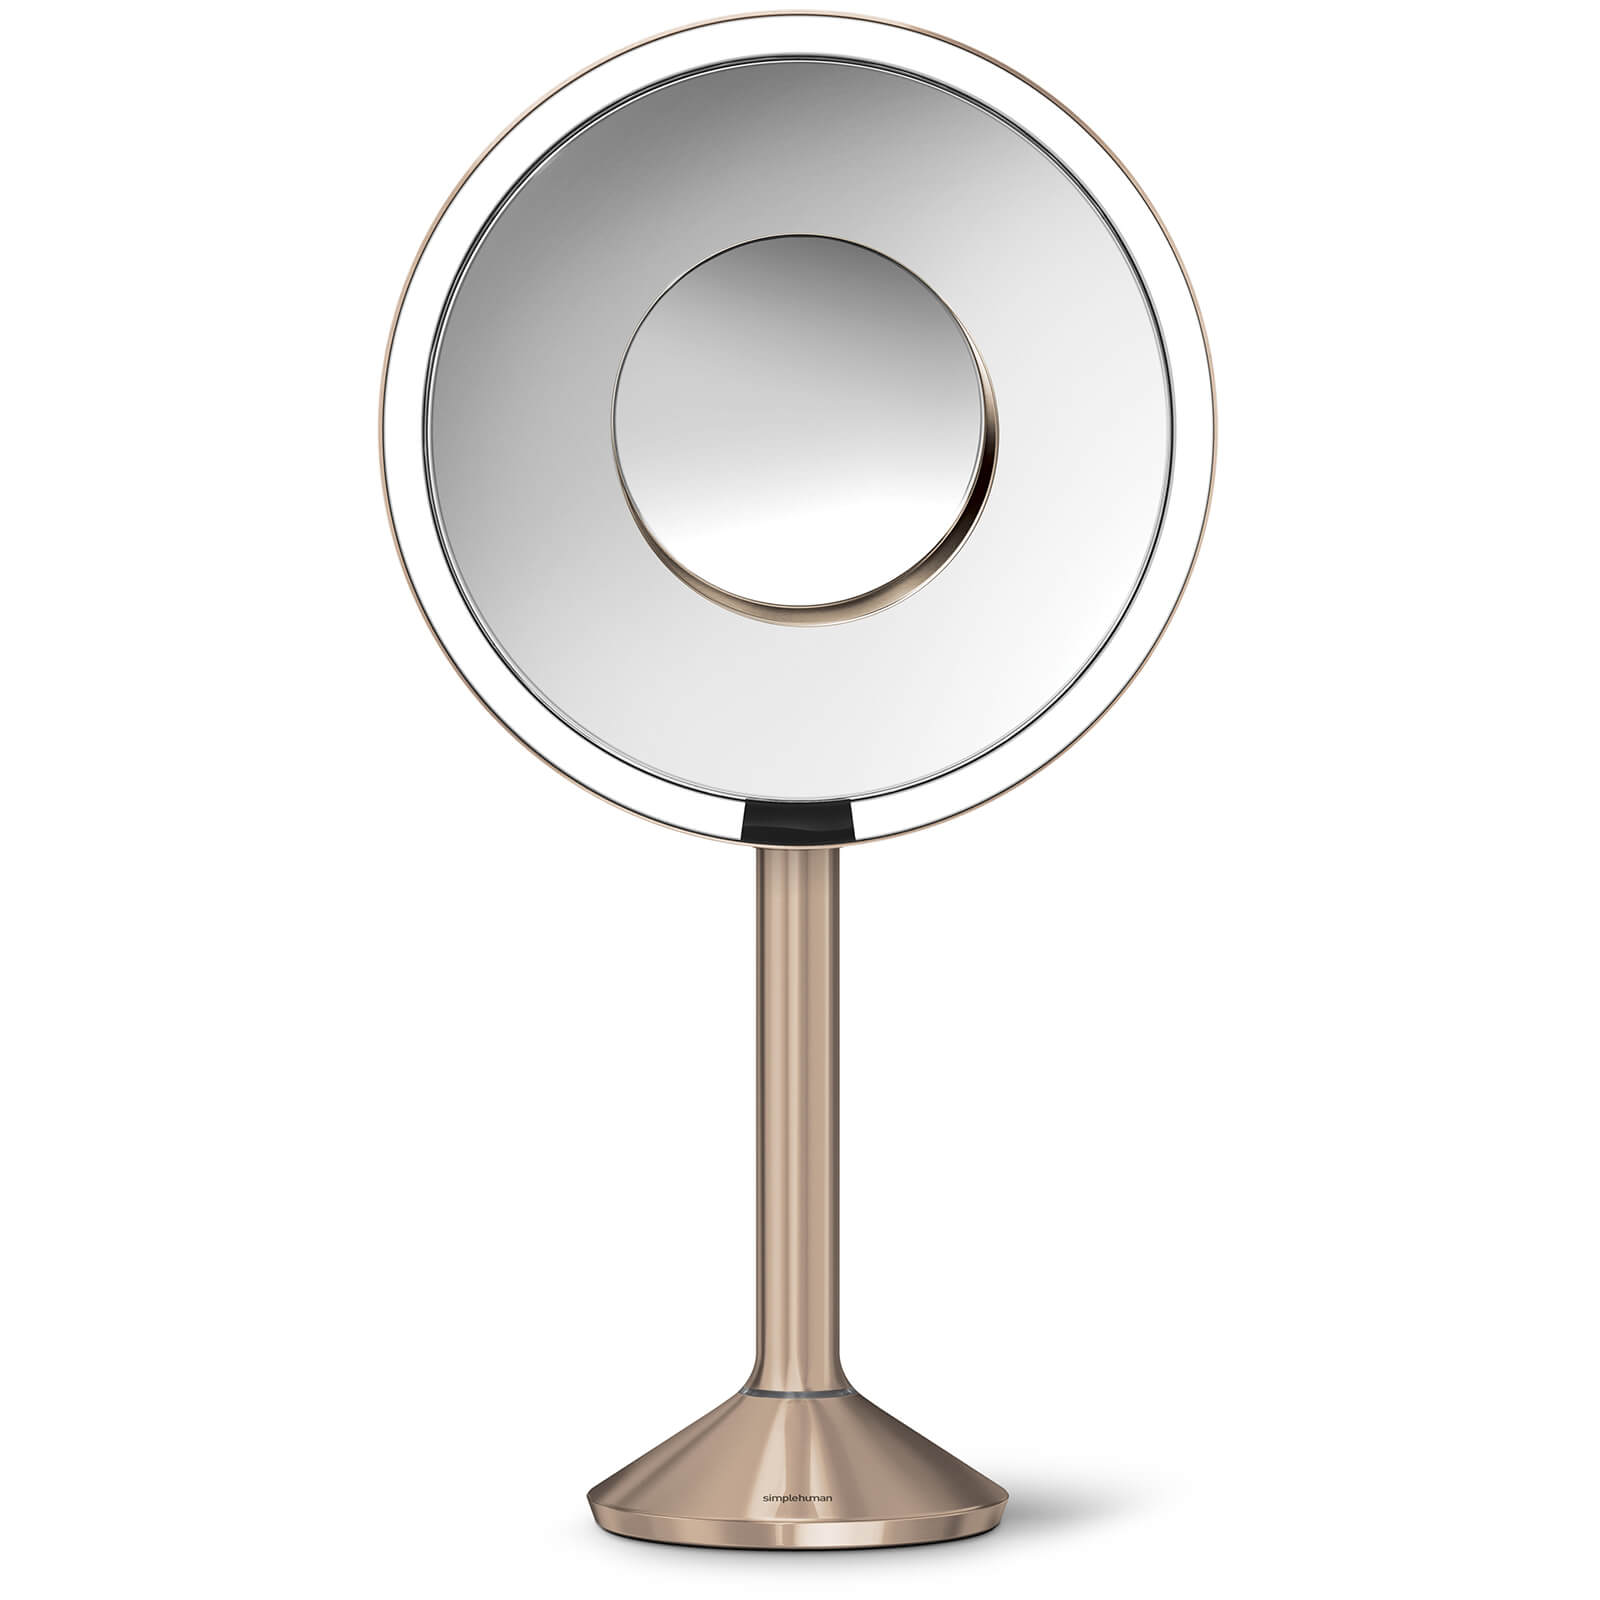 simplehuman Stainless Steel Rechargeable Pro 5x Plus 10x Magnification Sensor Mirror - Rose Gold 20cm